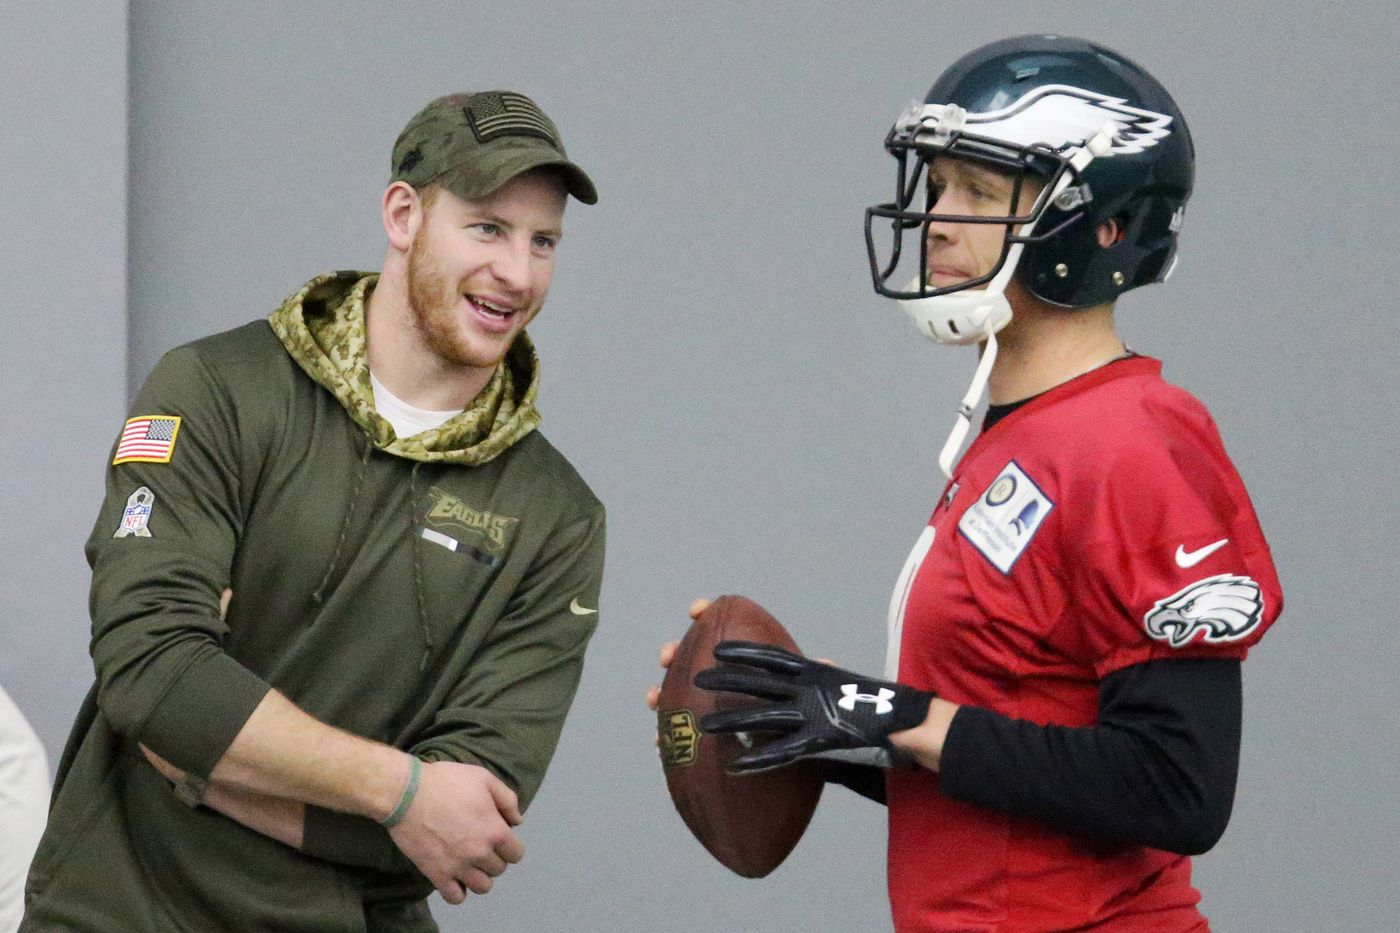 Report: Carson Wentz still sidelined with knee injury, Nick Foles will start Eagles' season opener against Falcons